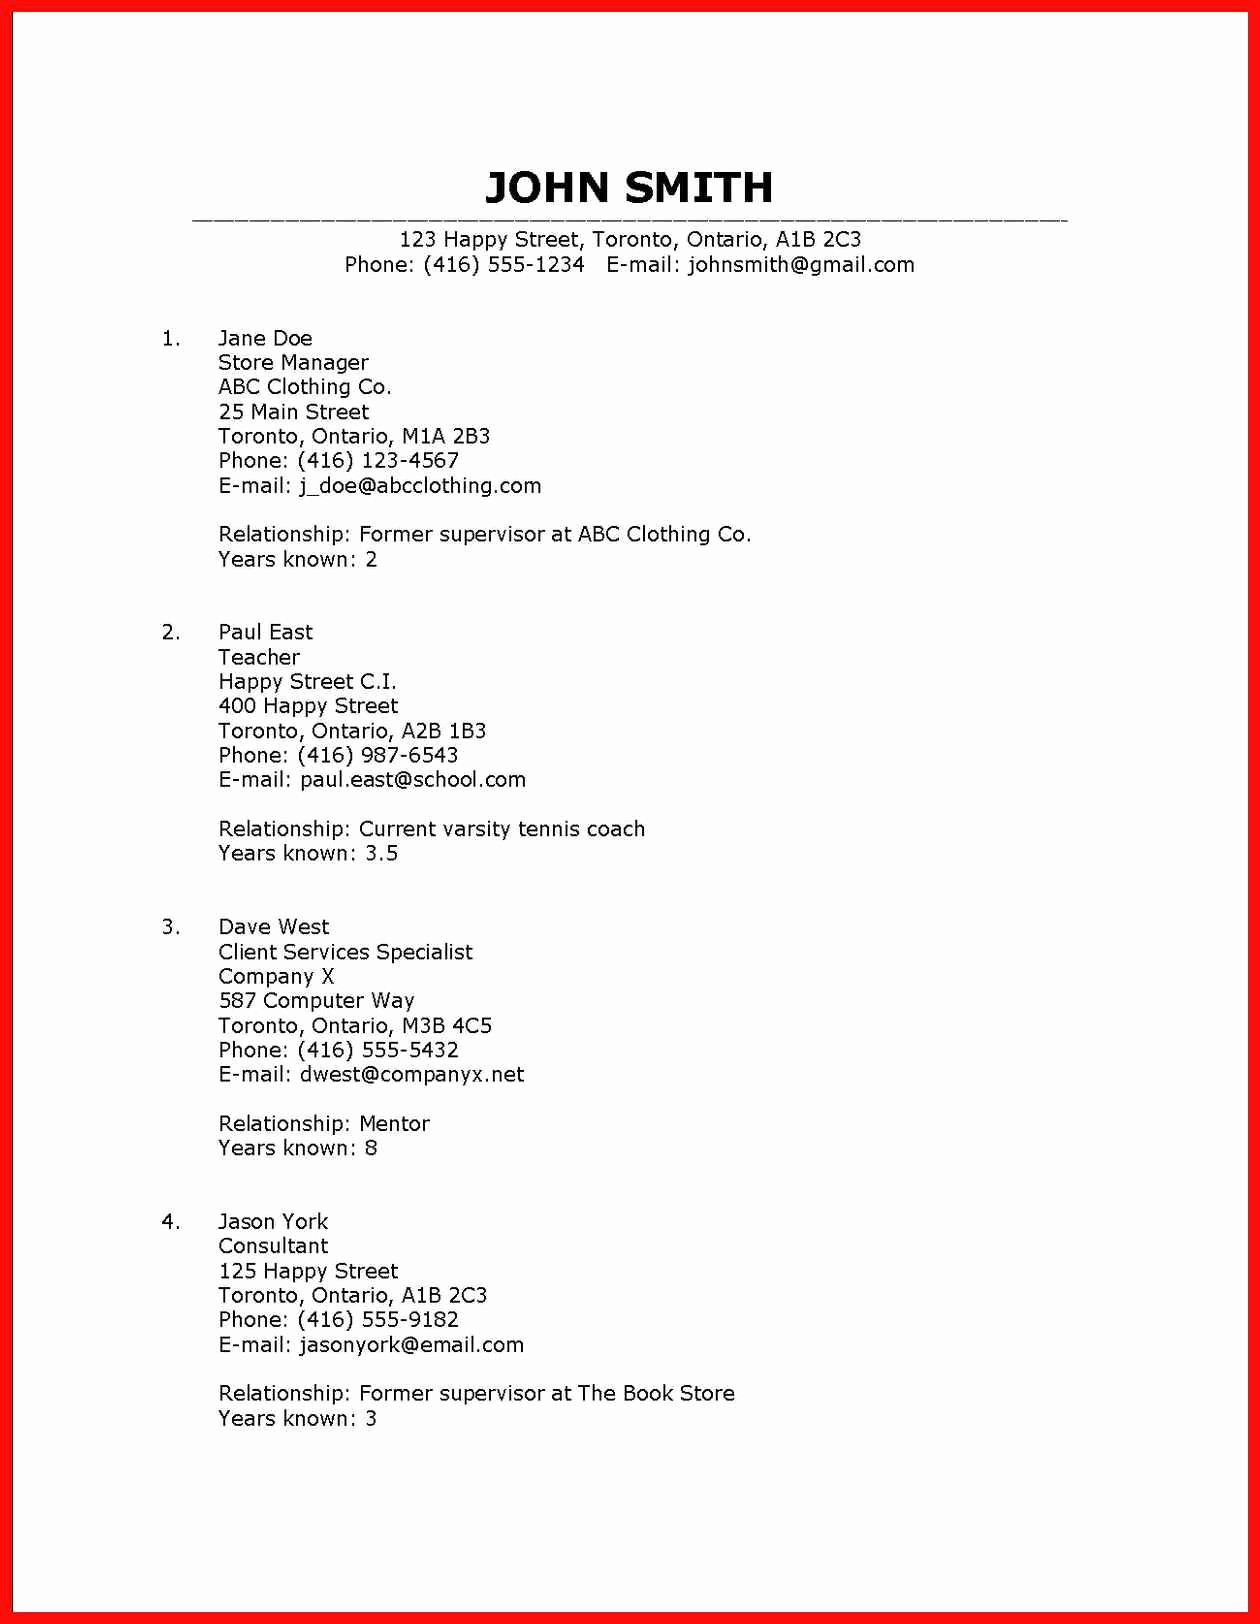 Reference Sheet for Resume Template Inspirational Reference Page for Resume